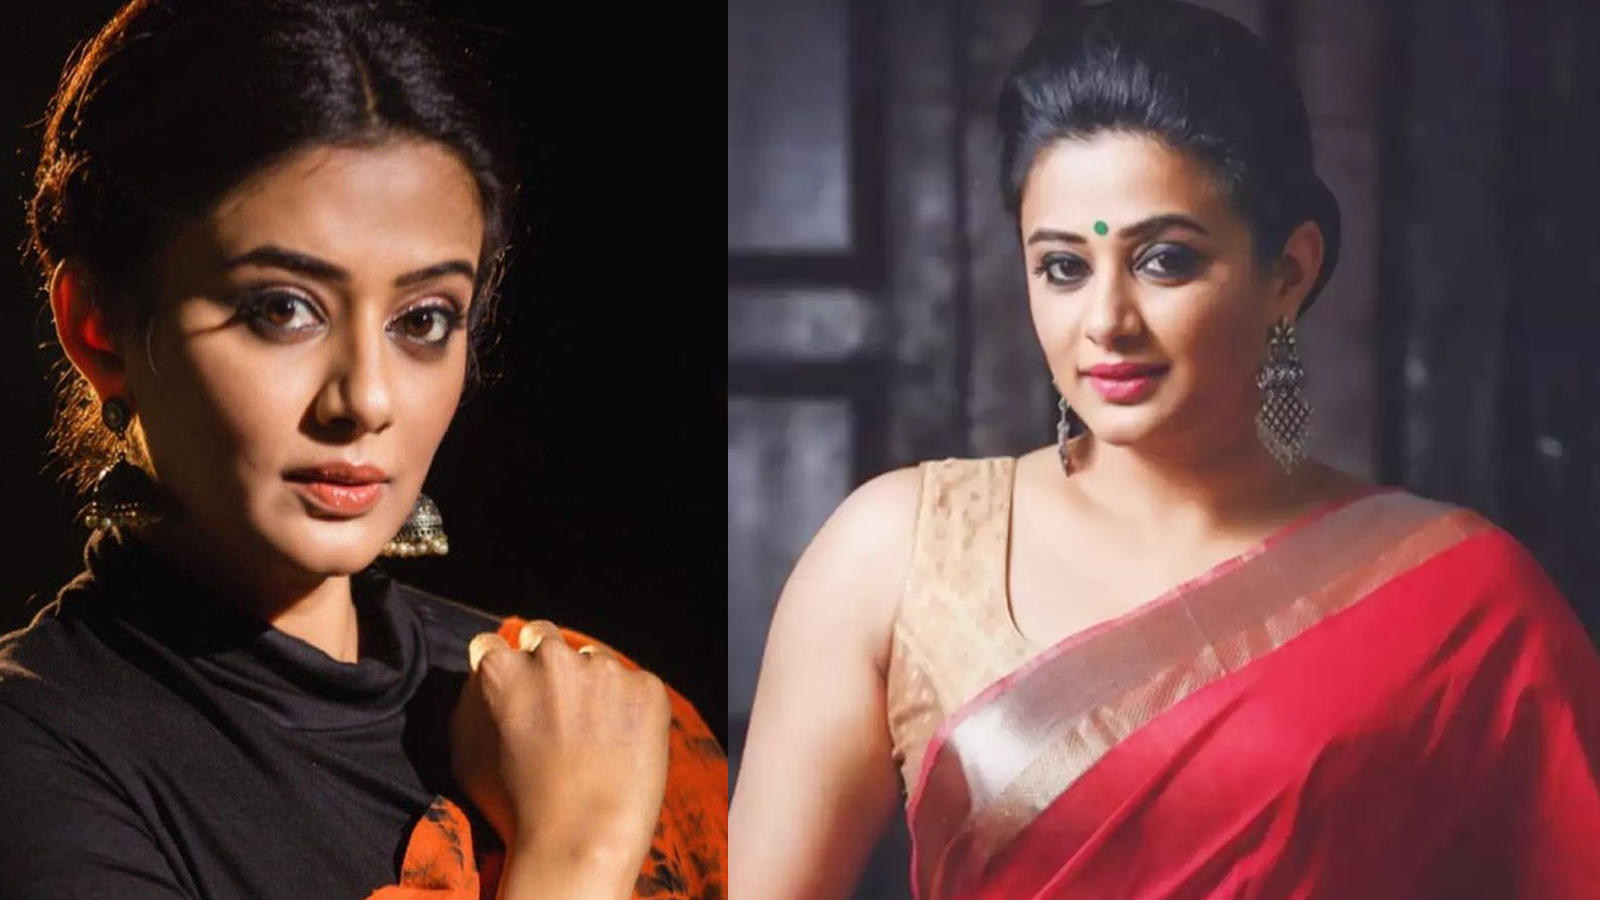 priyamani-says-she-has-been-body-shamed-reveals-people-say-things-like-you-look-like-a-pig-and-call-her-black